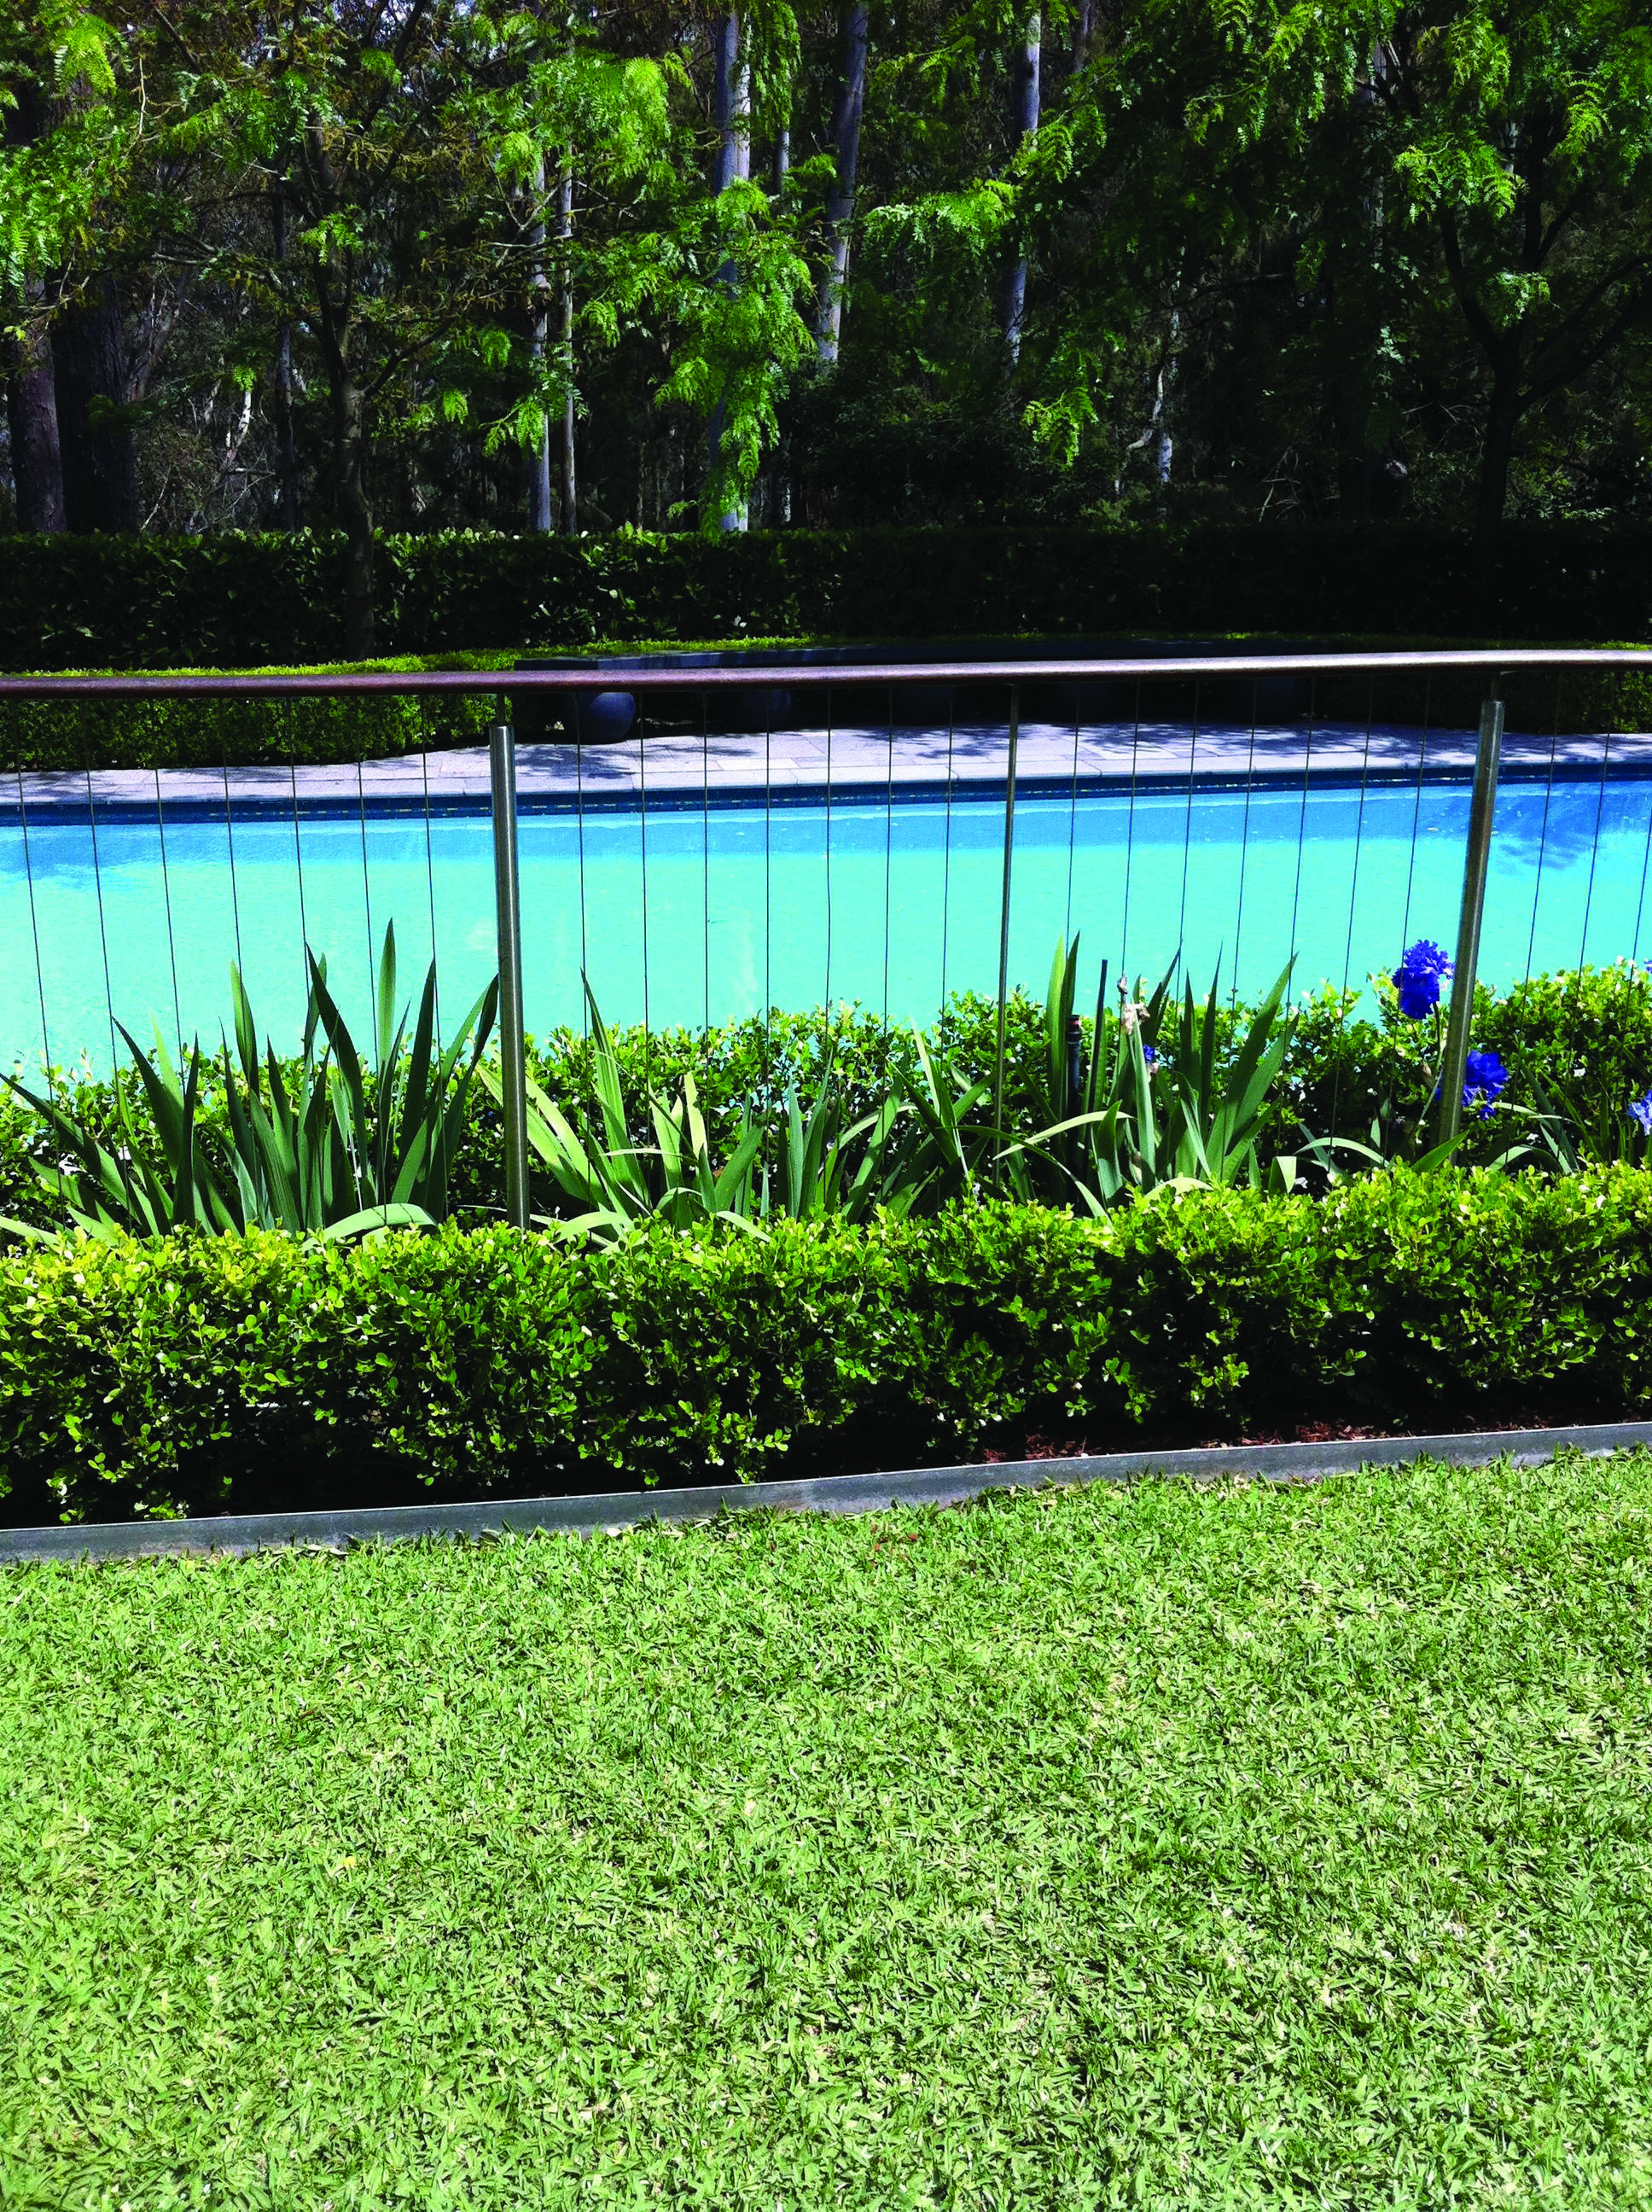 Great Pool Landscaping Brisbane Just On Miral Iva Home Design Pool Fencing Landscaping Garden Pool Backyard Pool